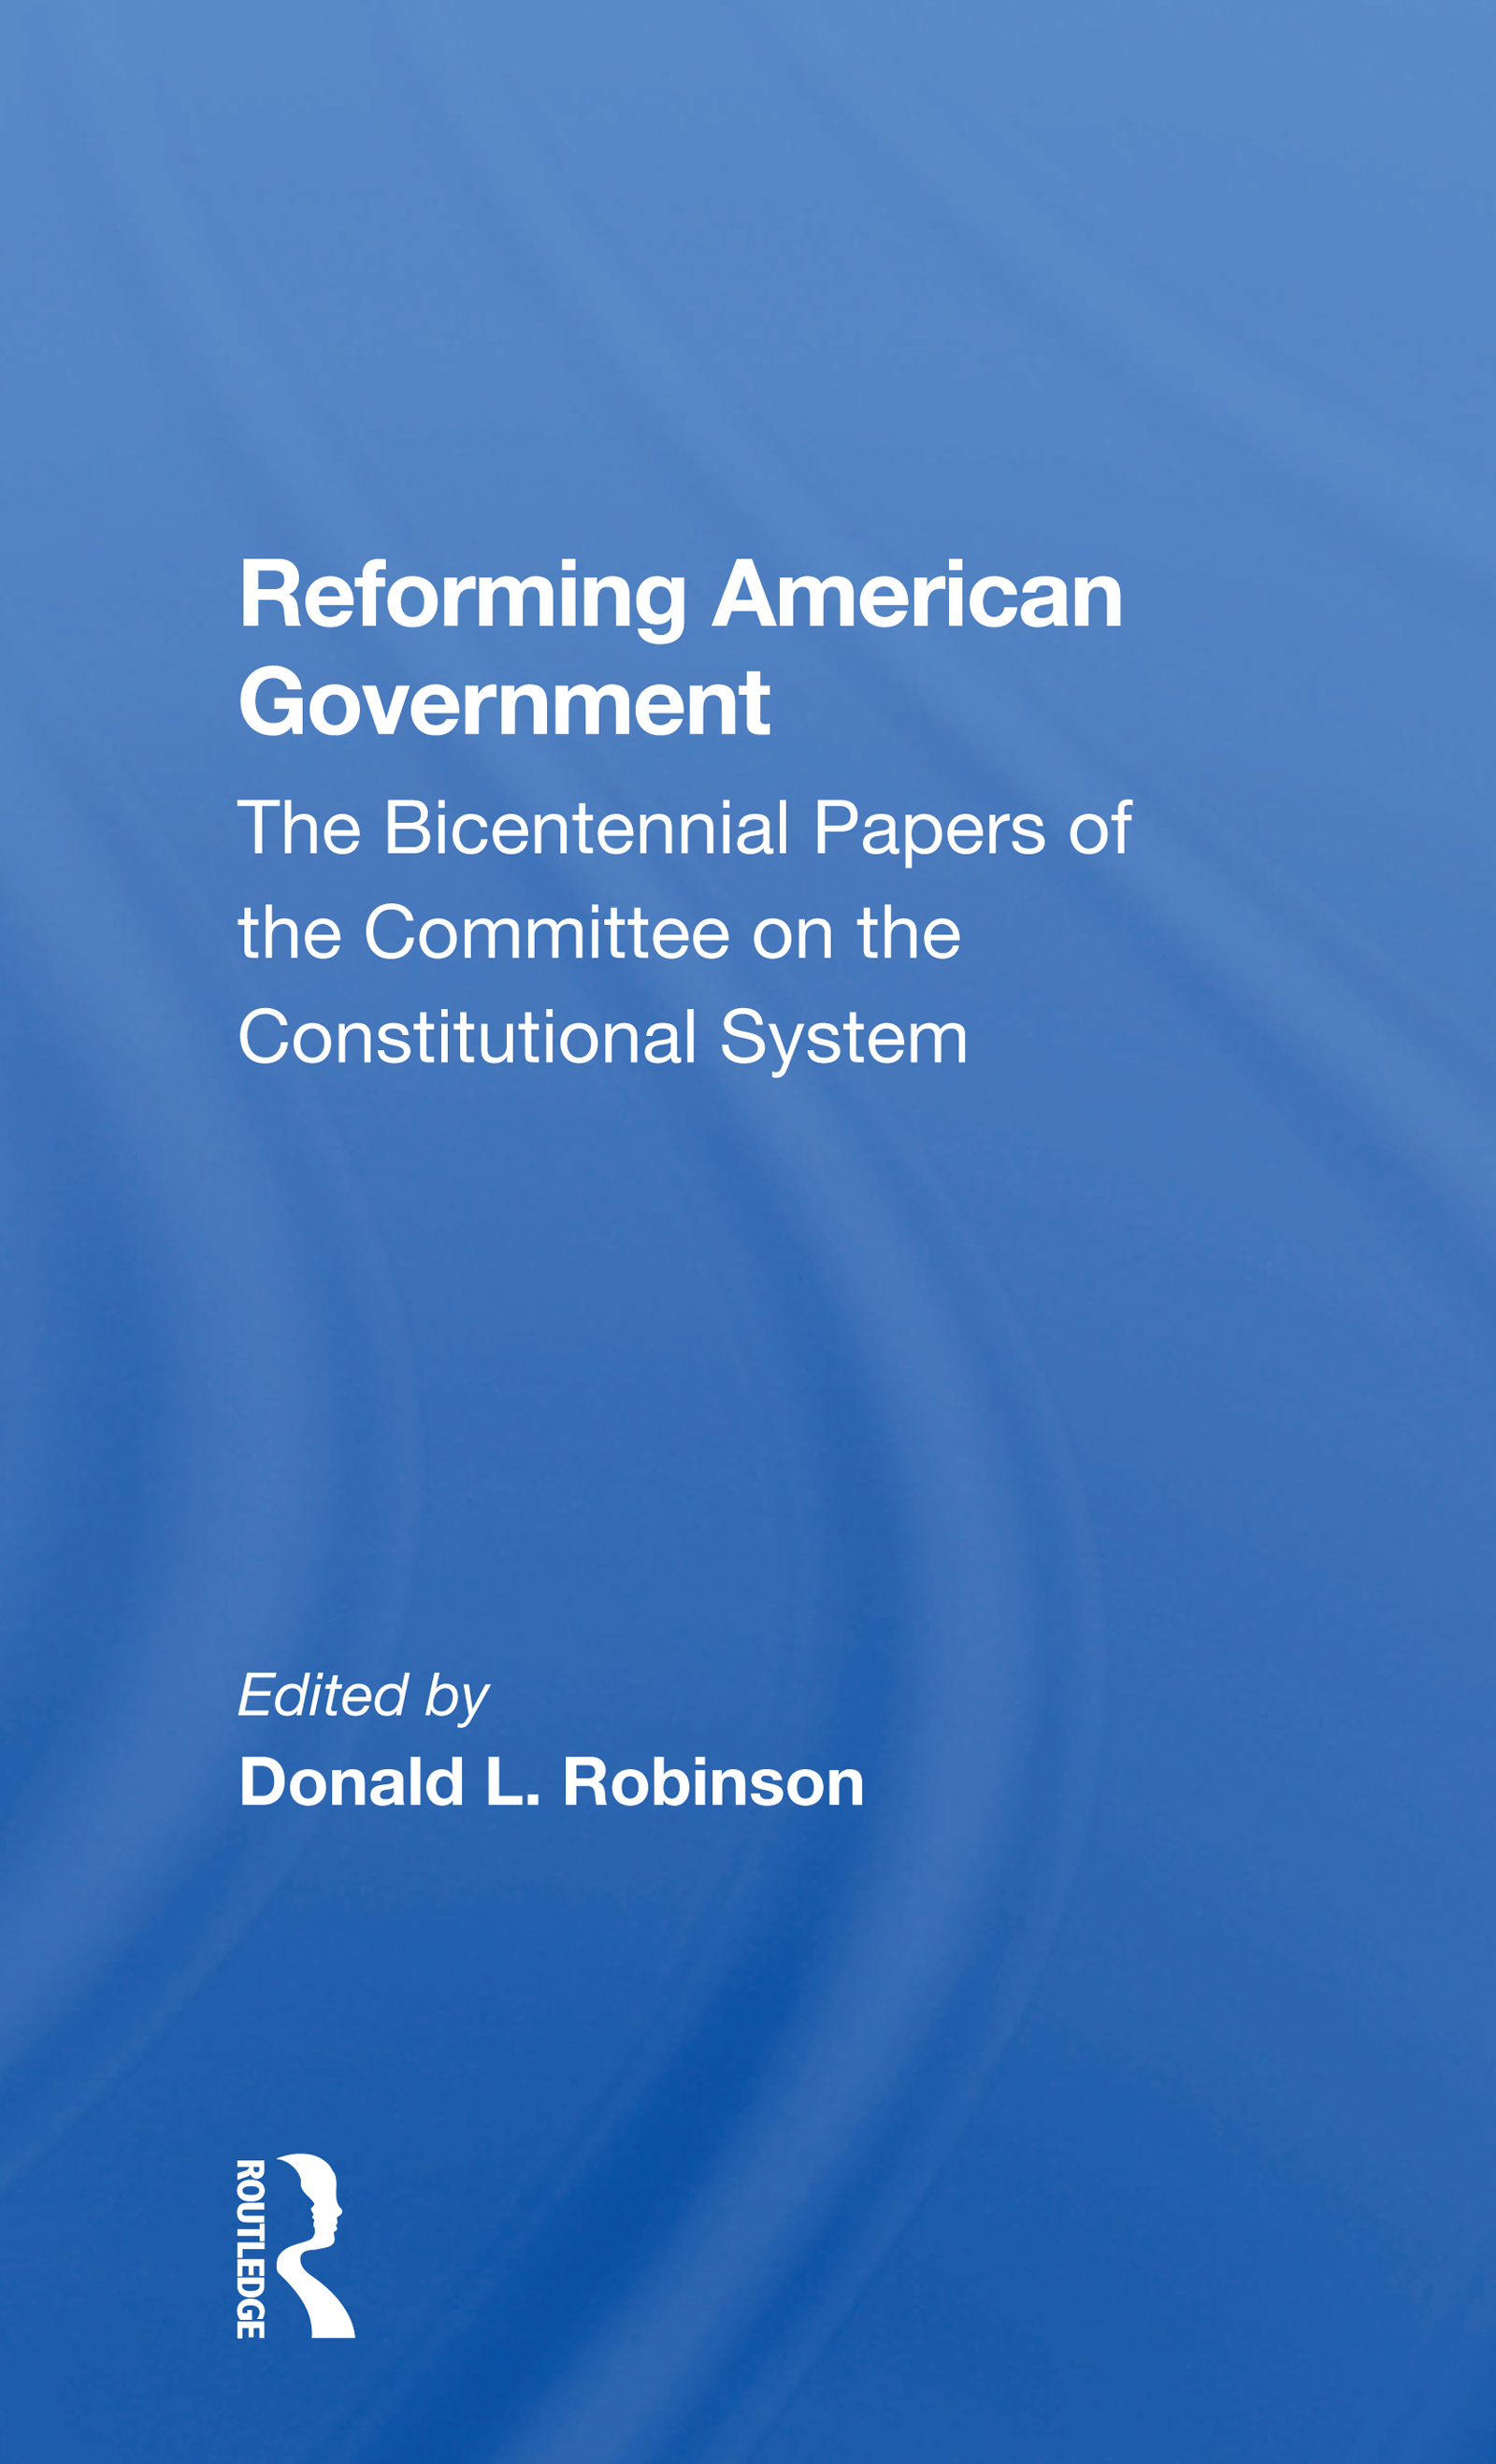 Reforming American Government